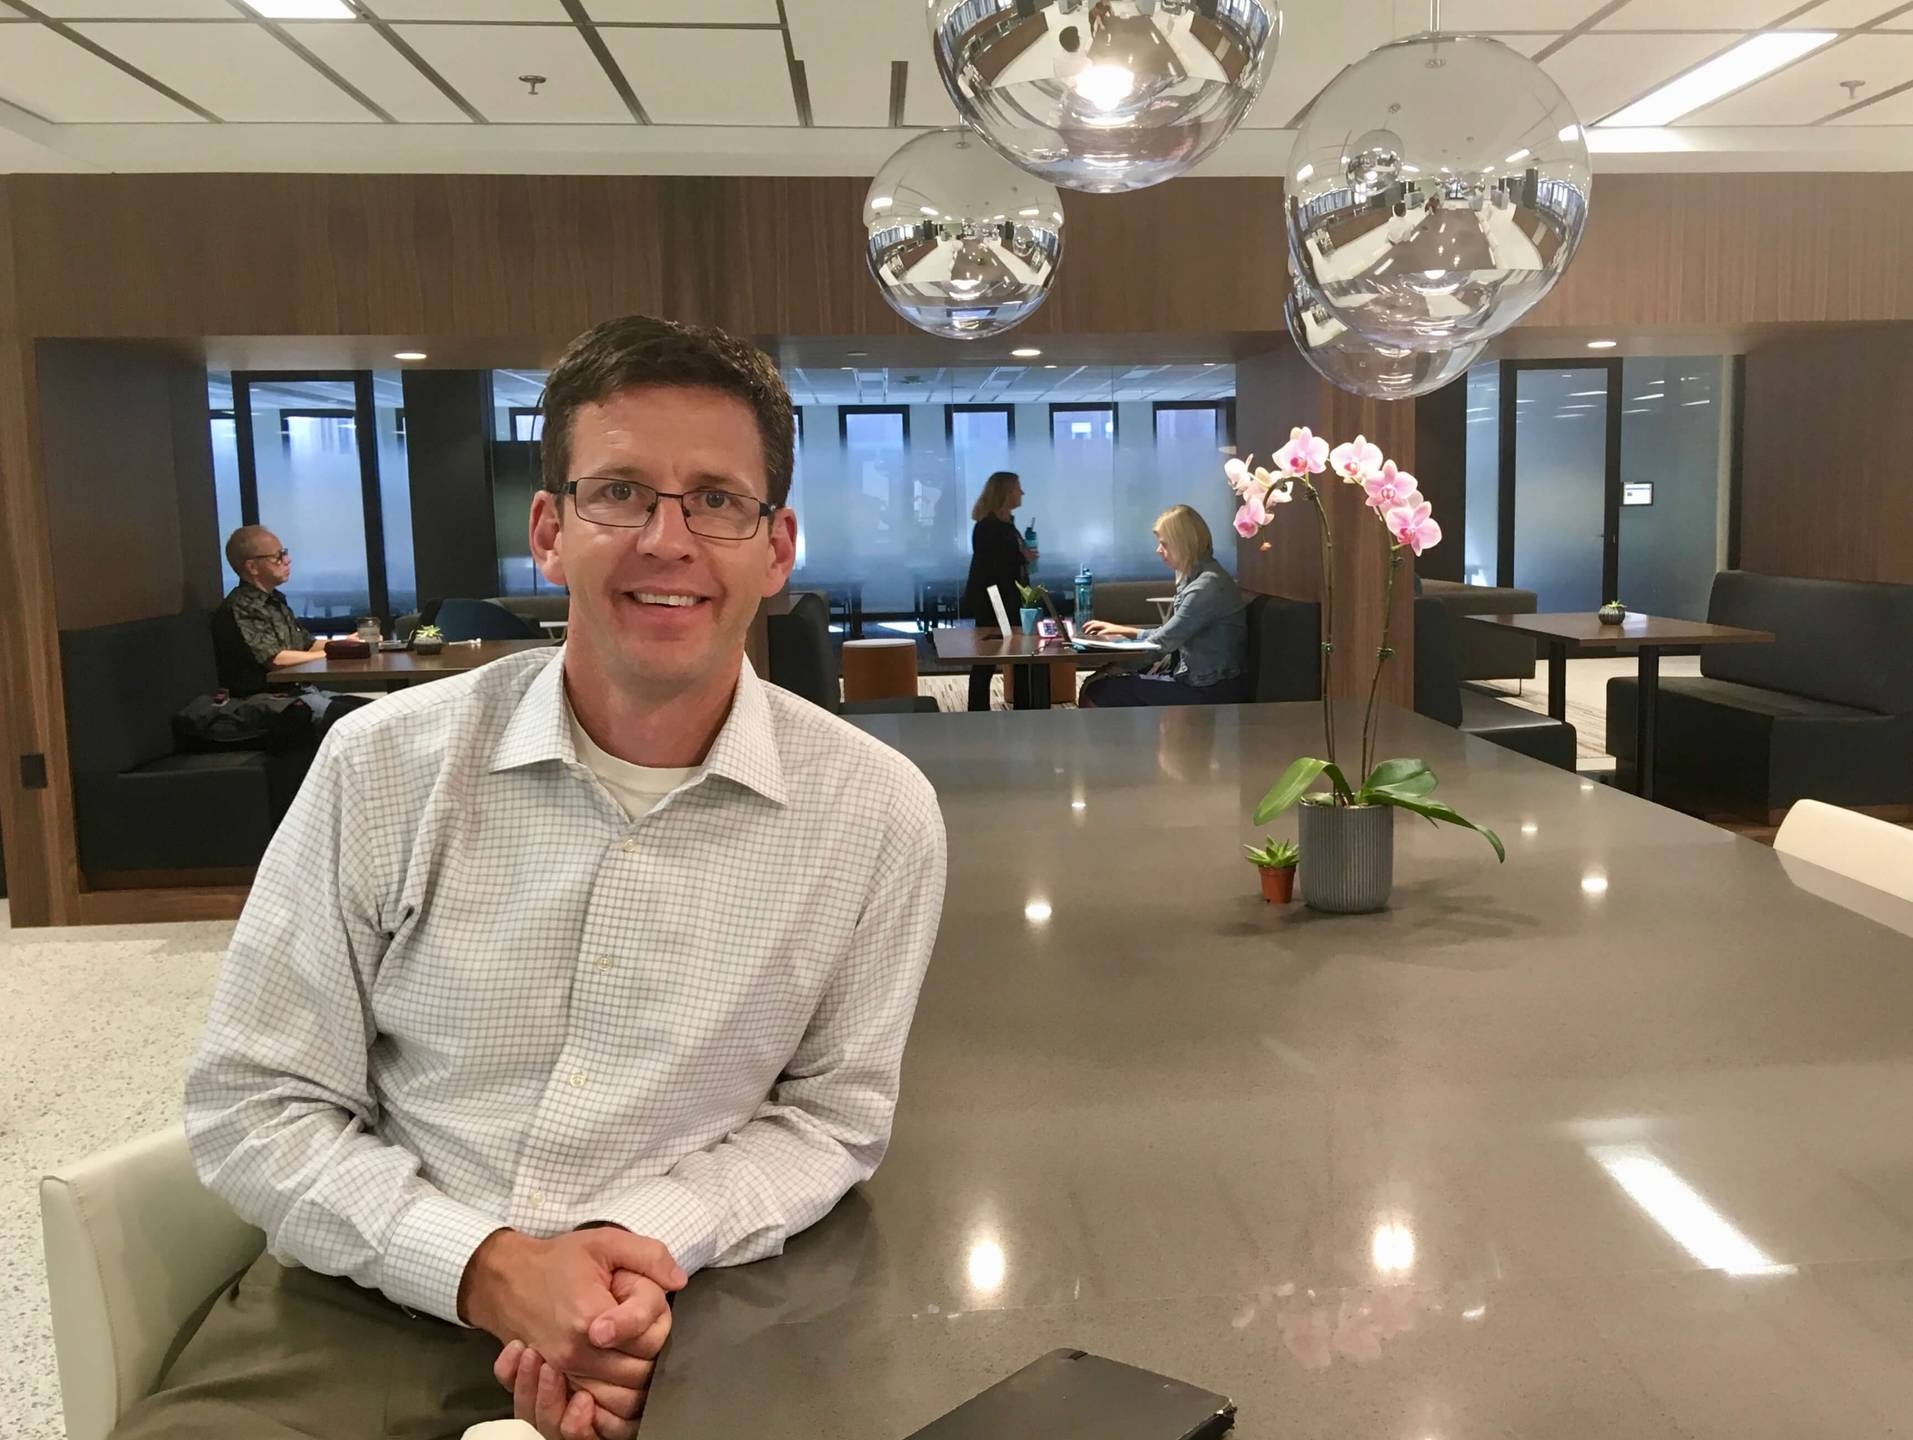 Structural CEO and co-founder Scott Burns, a man in a button down shirt and glasses, sits at a large table. Rewire PBS Work Workplace social network